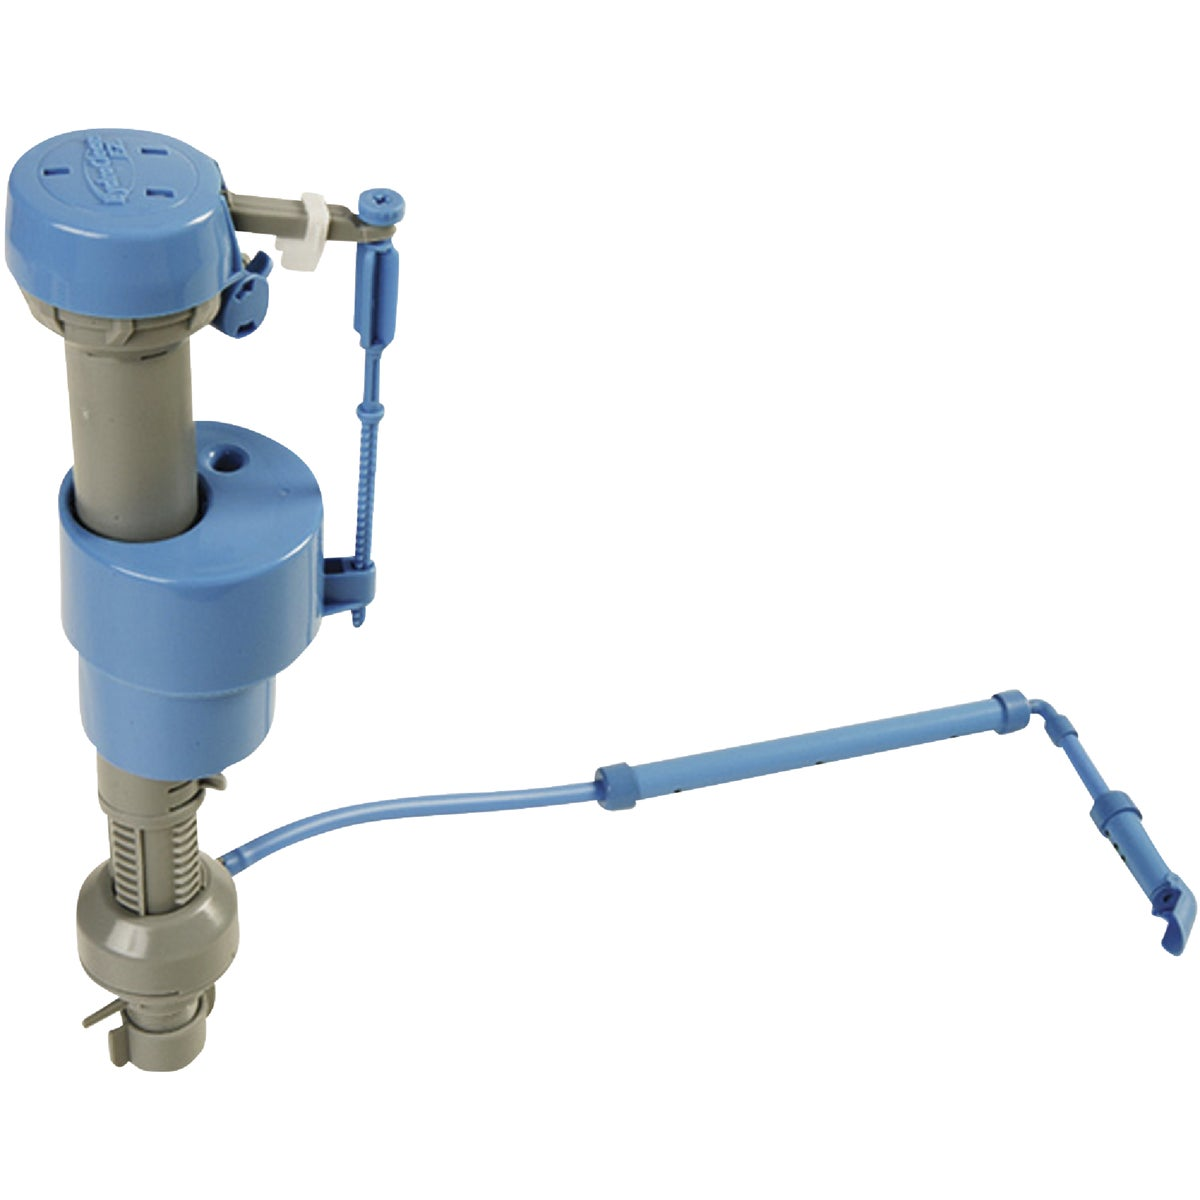 HYDROCLEAN FILL VALVE - HC660 by Danco Perfect Match